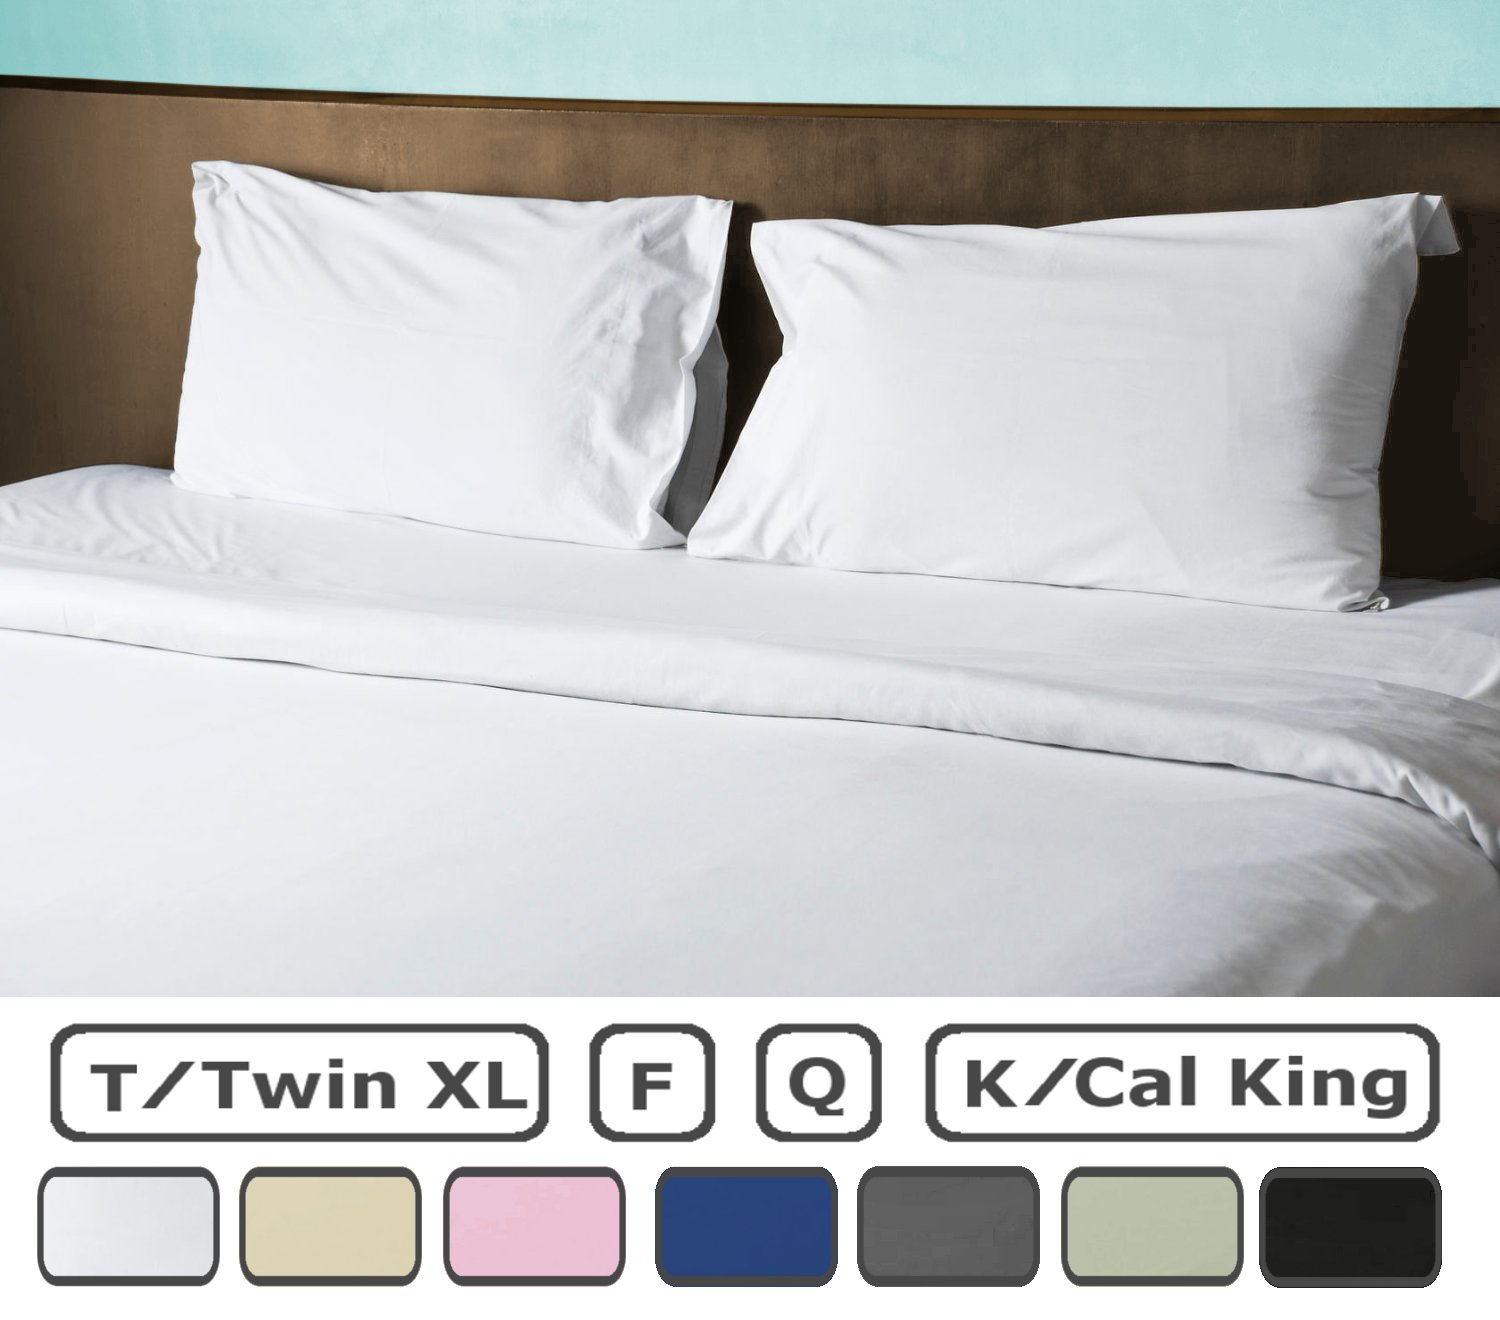 American Pillowcase Twin XL Flat Sheet 100% Brushed Microfiber Bed Sheets - Hypoallergenic Ultra Soft - College Color Dorm Bedding - Wrinkle, Stain Fade Resistant - White